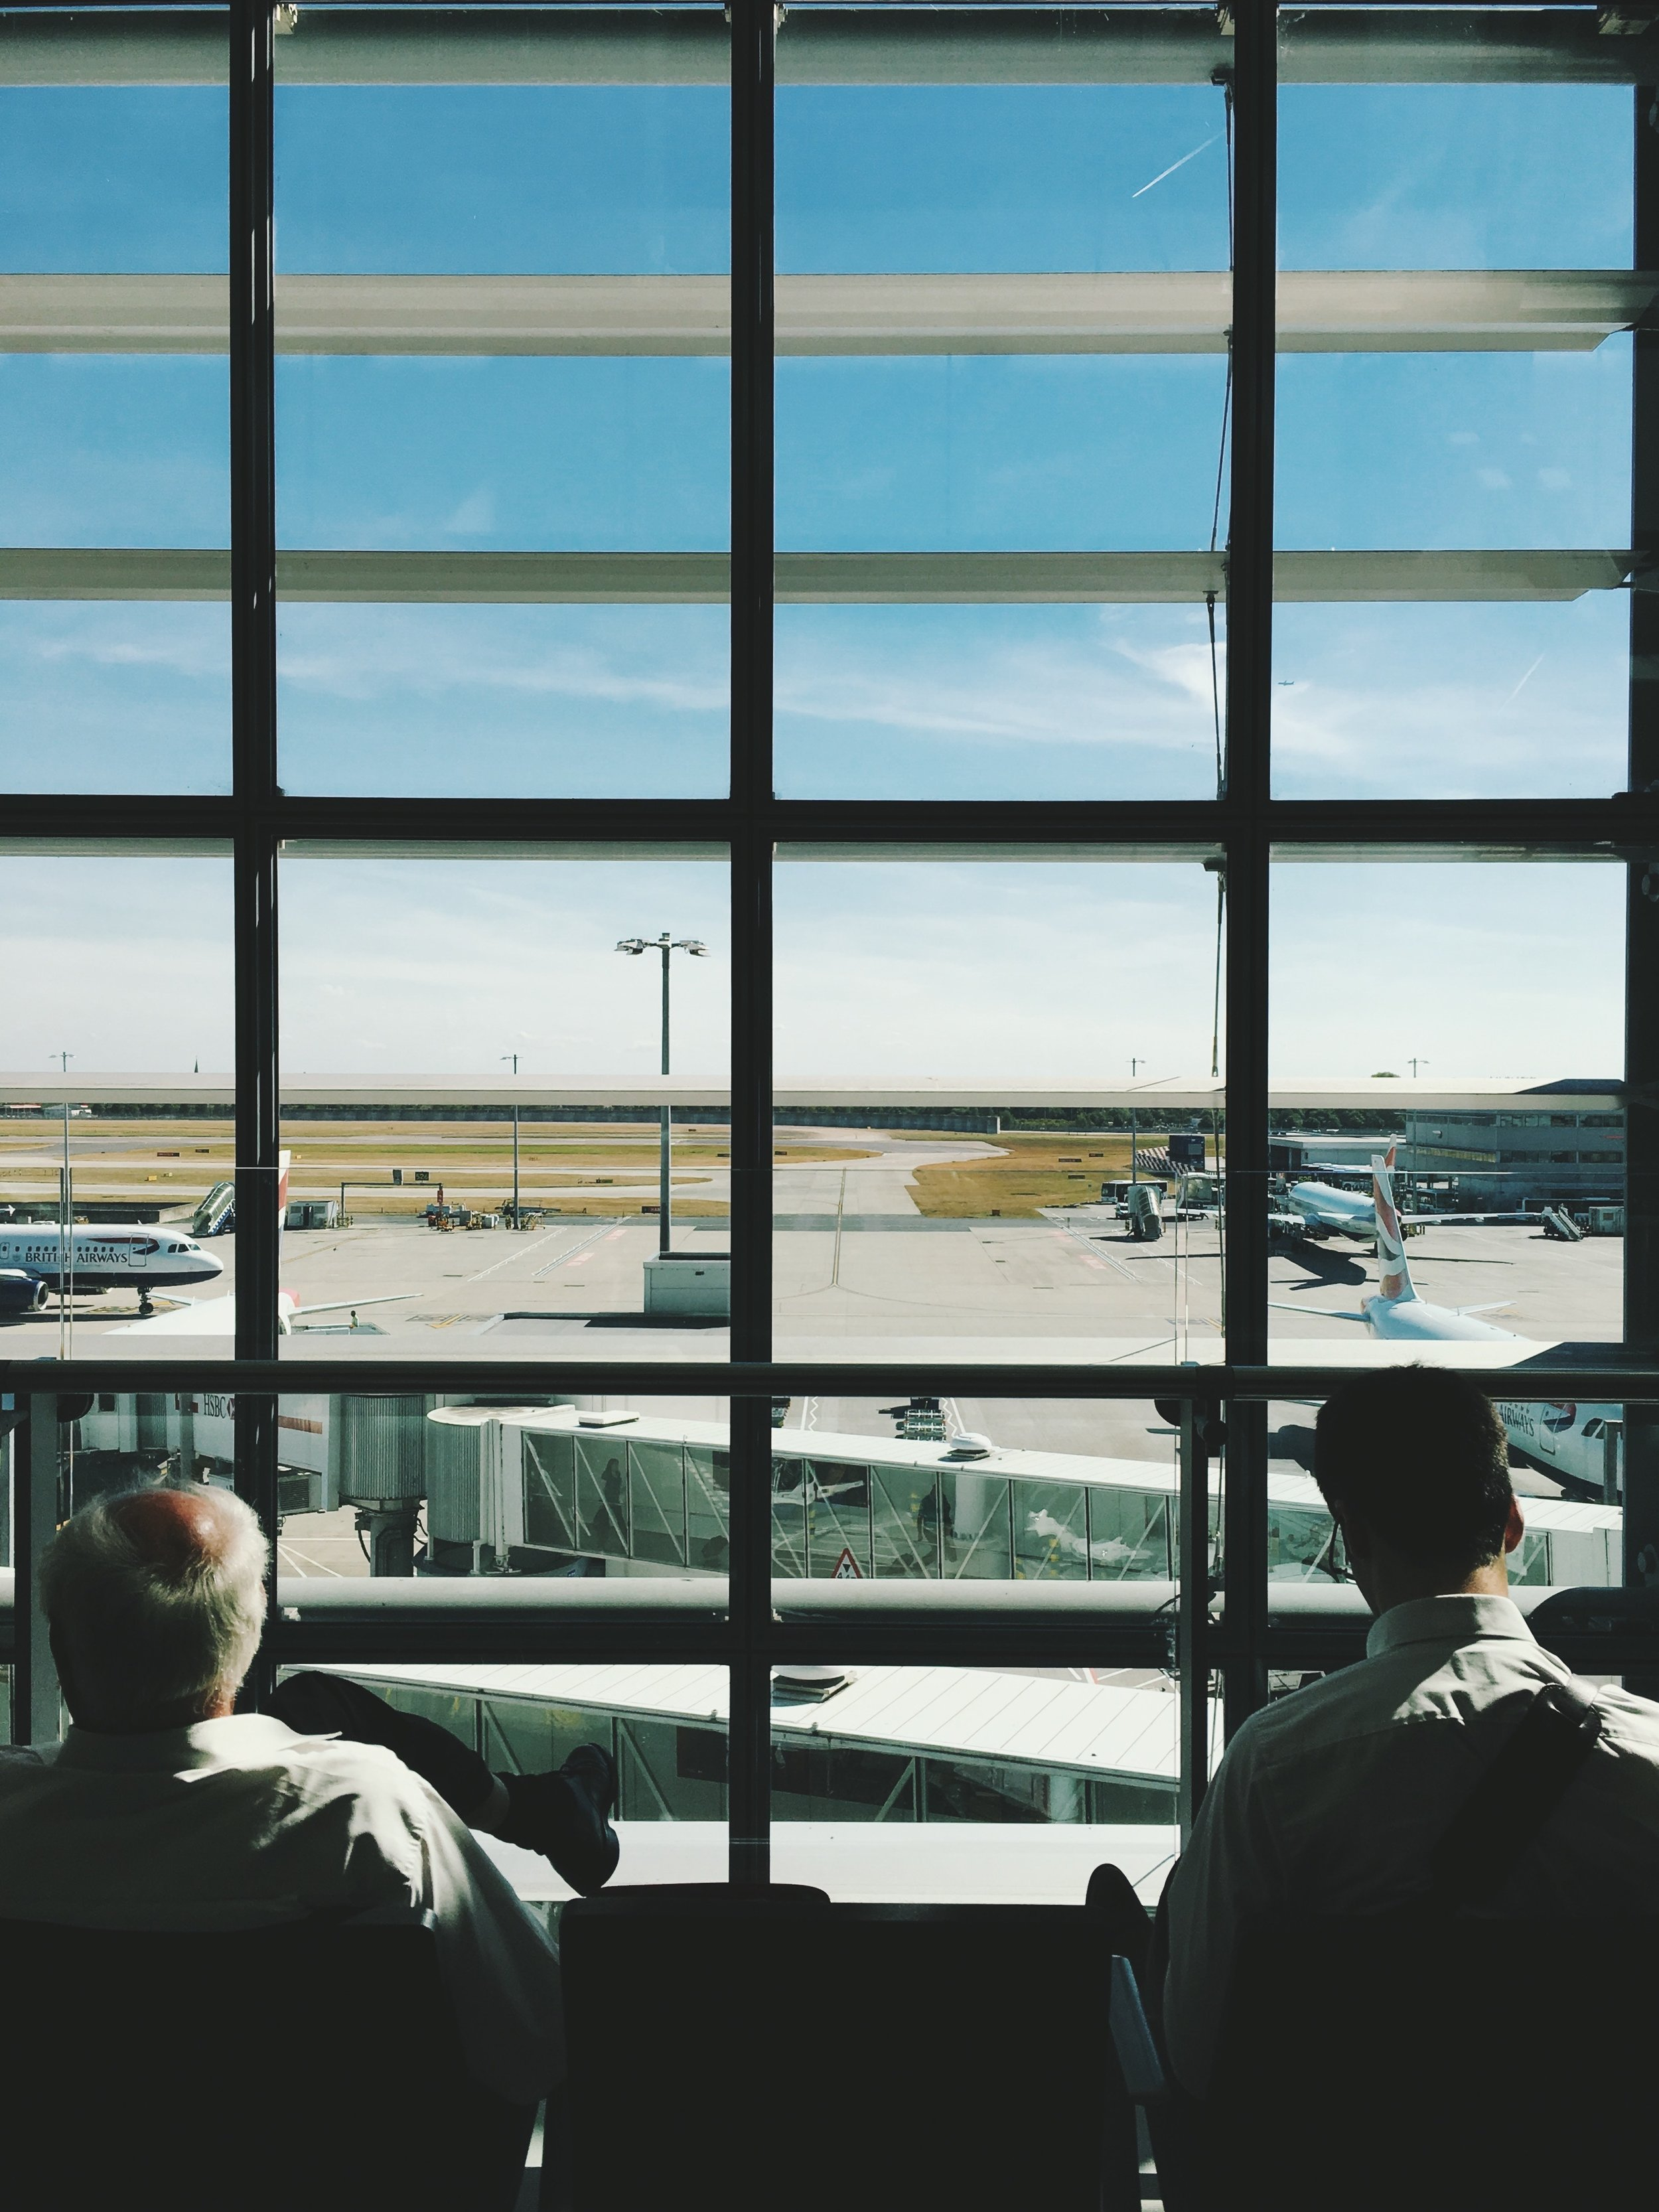 The 19 Most Annoying People You Meet at the Airport